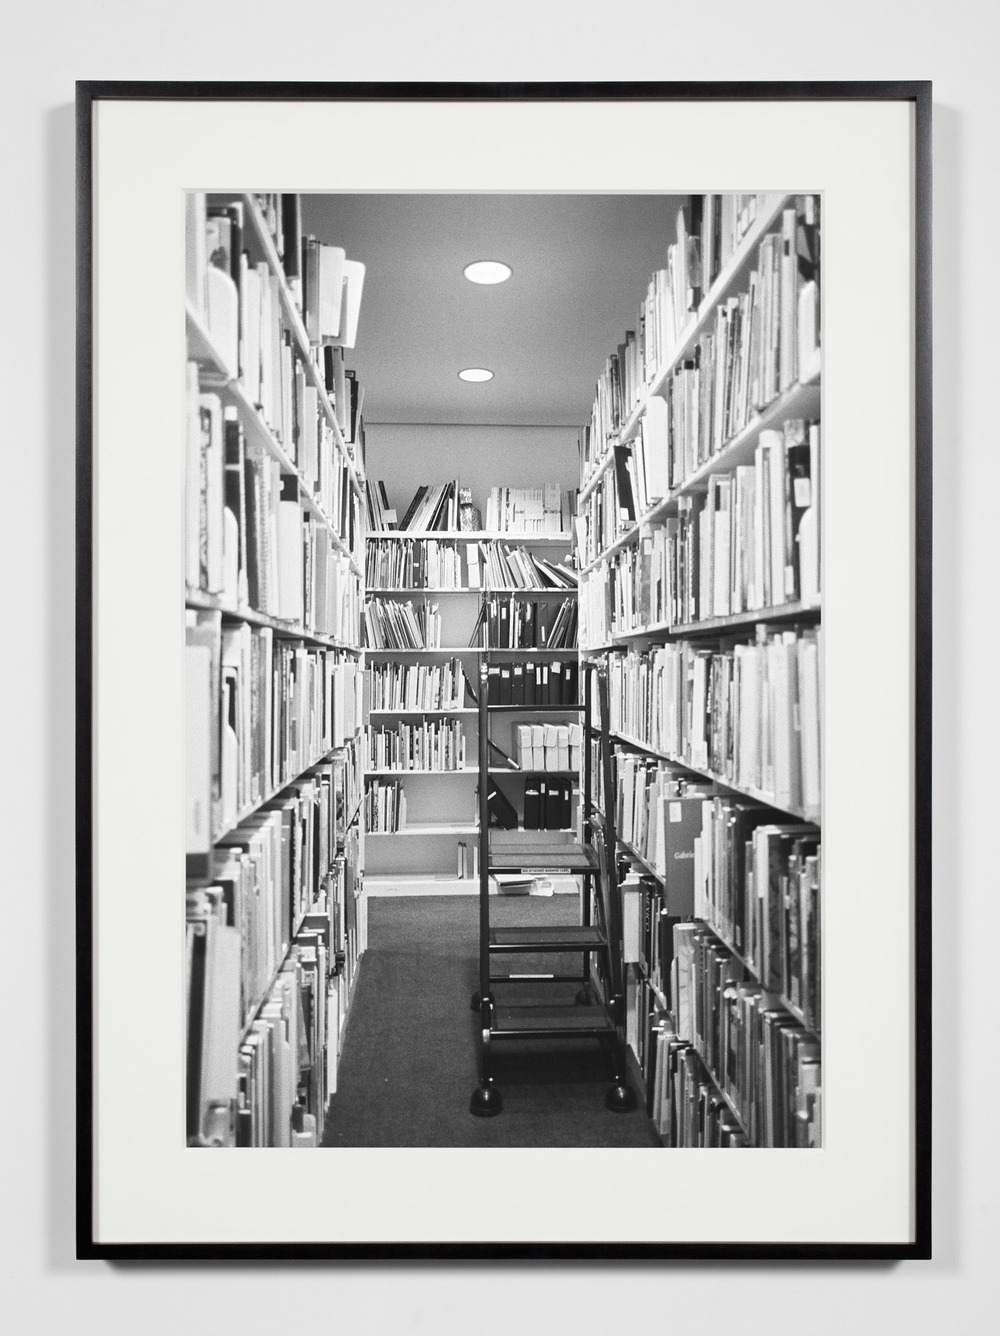 Museum Library Stacks, Washington, District of Columbia, August 18, 2008    2011   Epson Ultrachrome K3 archival ink jet print on Hahnemühle Photo Rag paper  36 3/8 x 26 3/8 inches   Industrial Portraits, 2008–